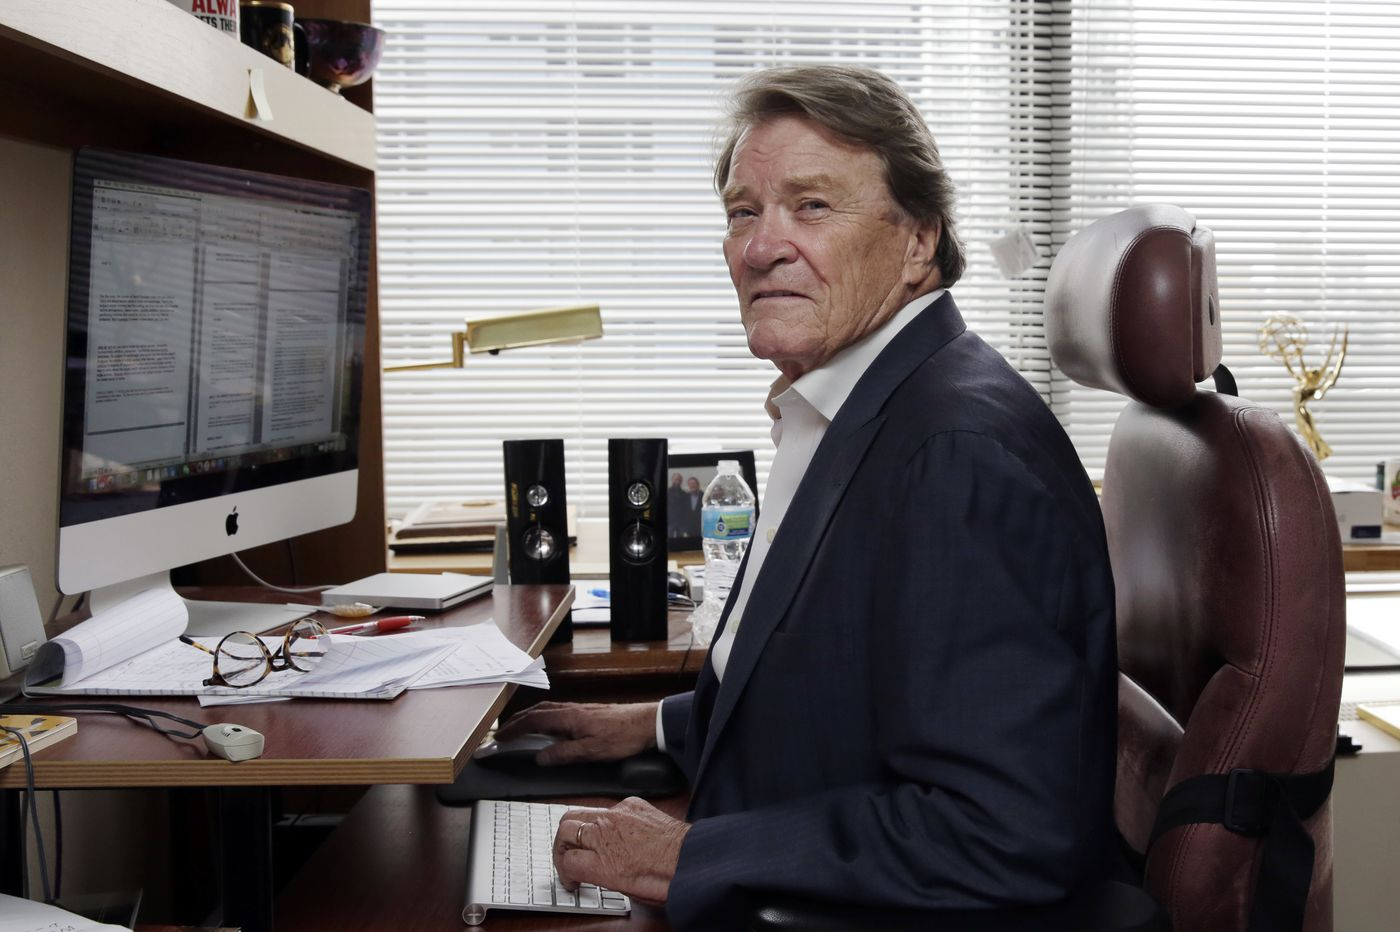 '60 Minutes' Newsman Steve Kroft Is Retiring - Find Out When